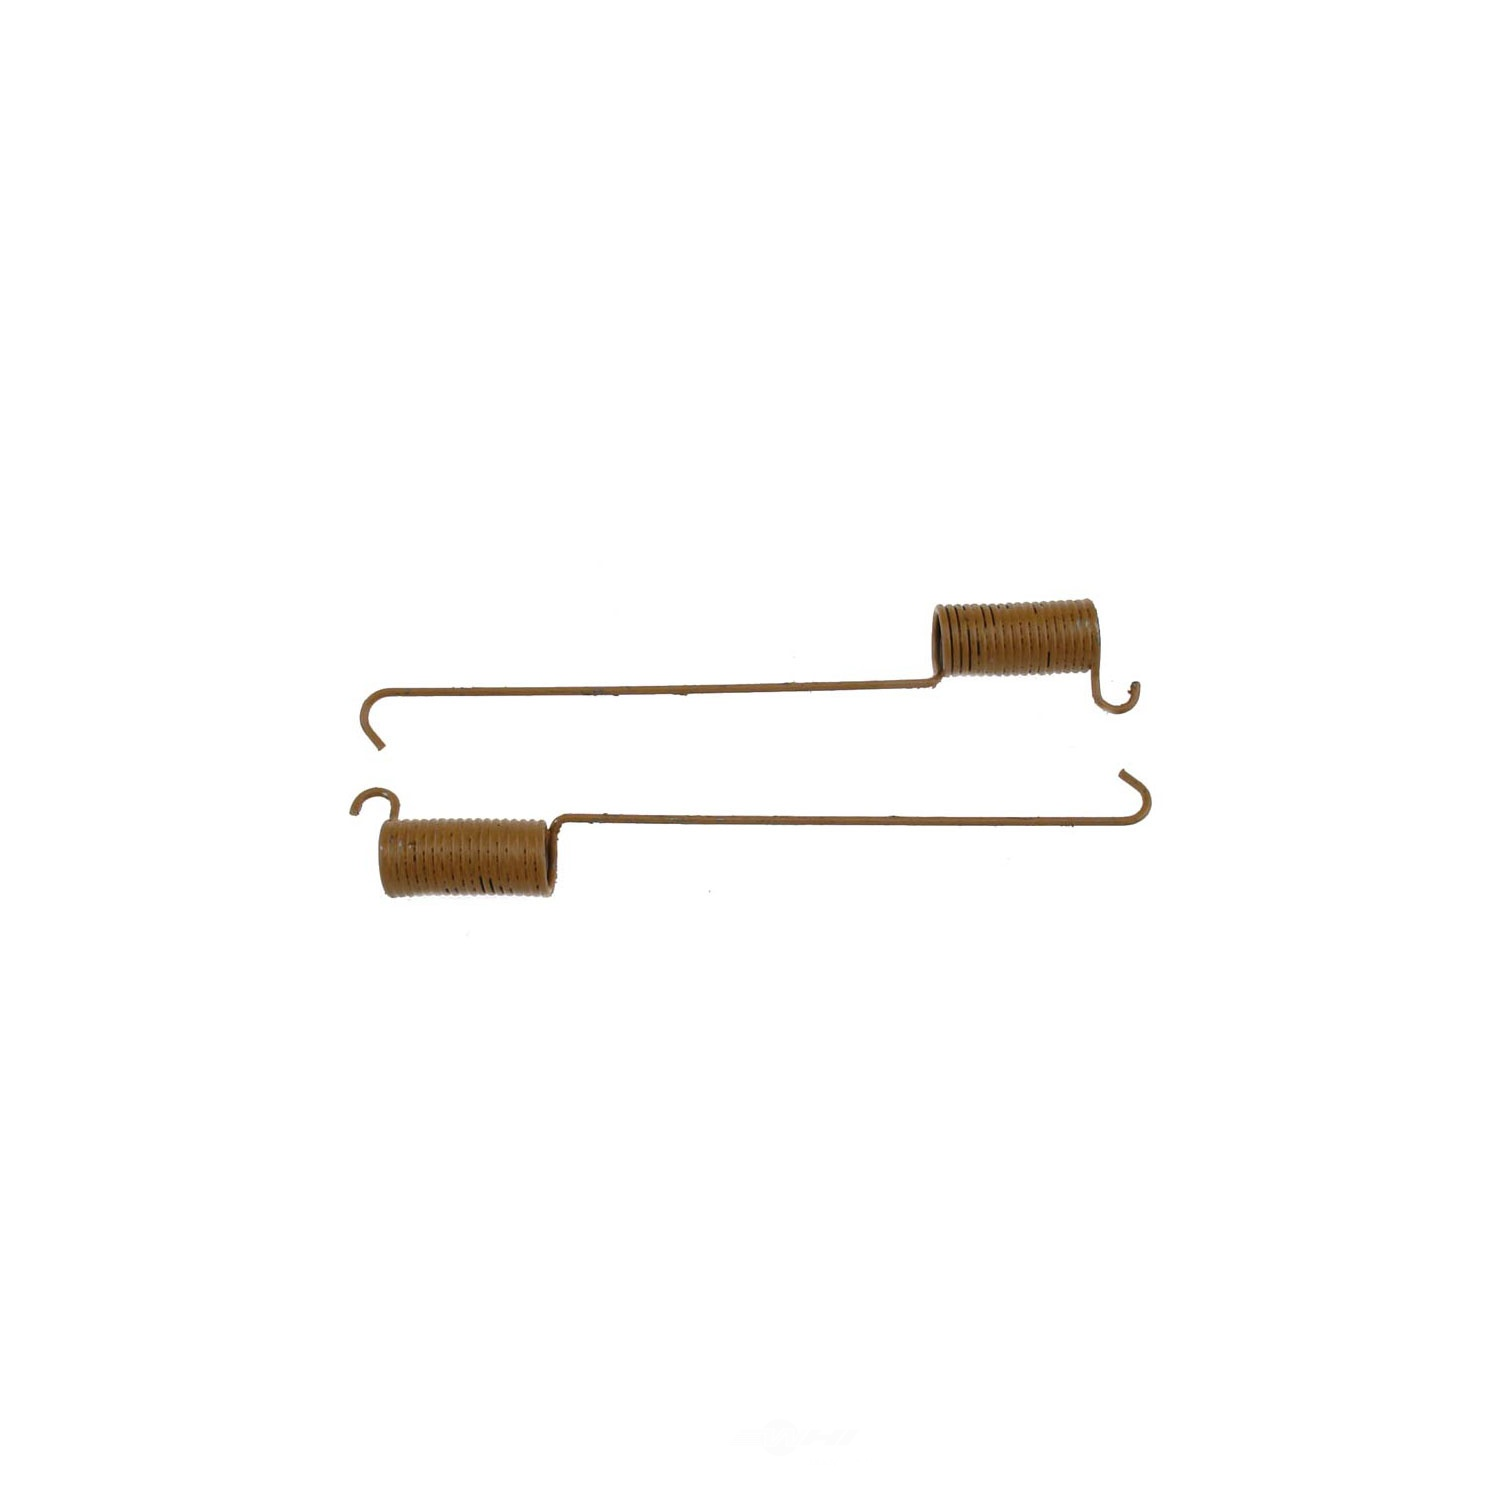 CARLSON QUALITY BRAKE PARTS - Rear Adjust Screw Spring - CRL H430